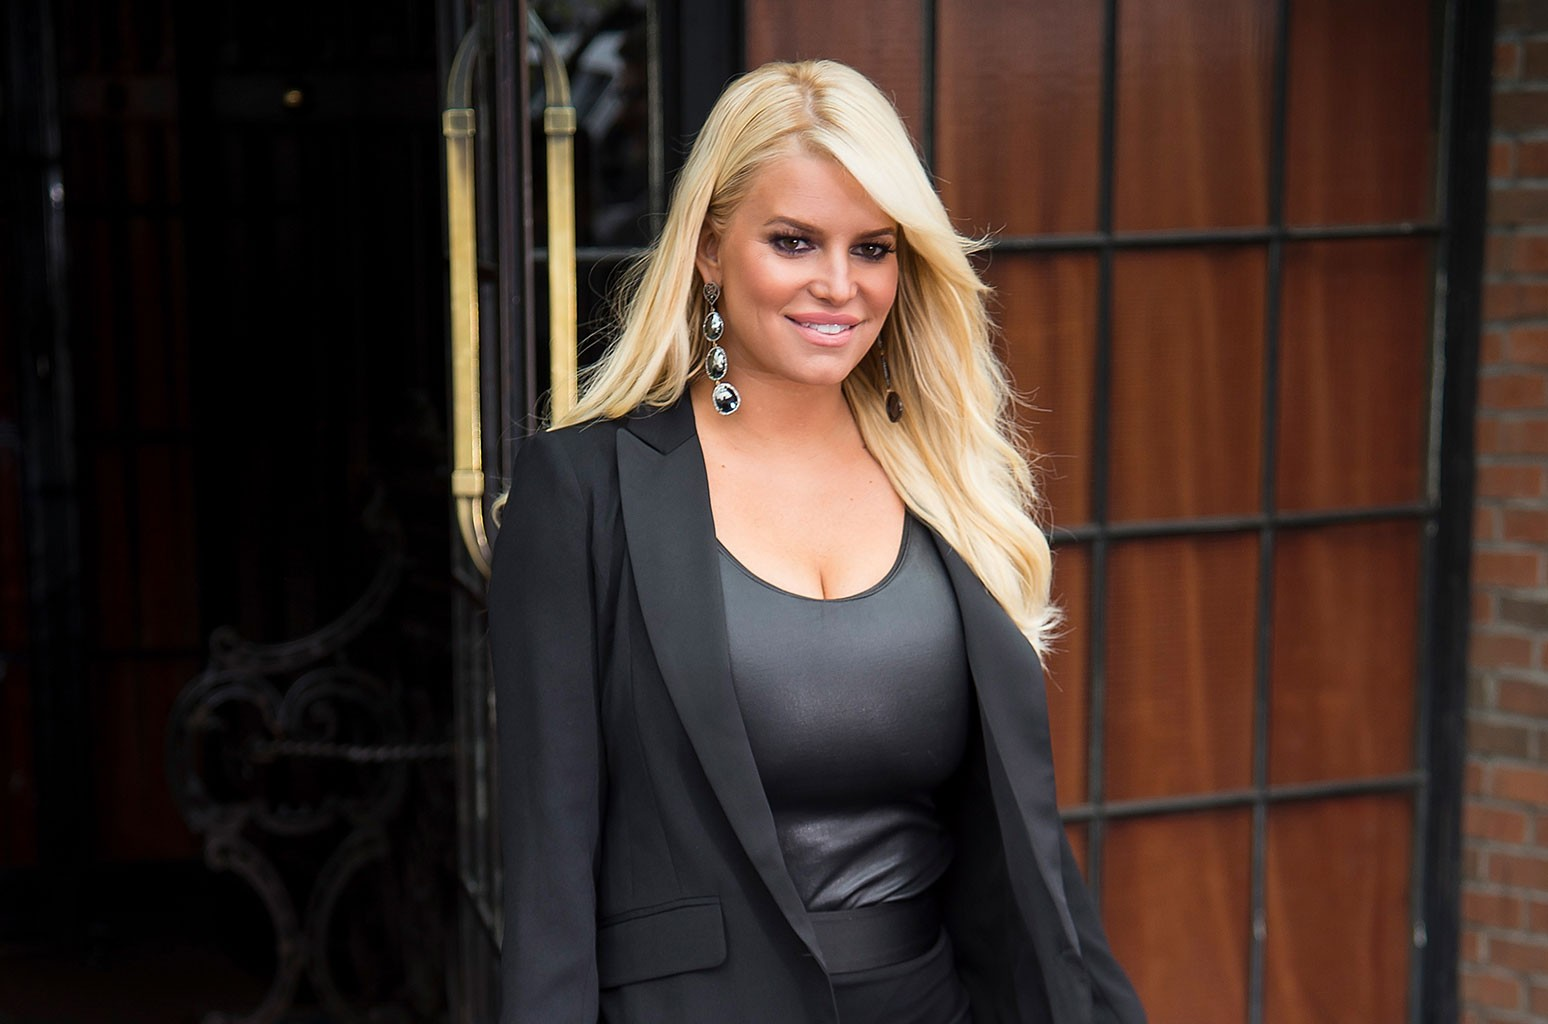 jessica-simpson-reveals-she-doesnt-even-own-a-scale-anymore-after-years-of-body-shaming